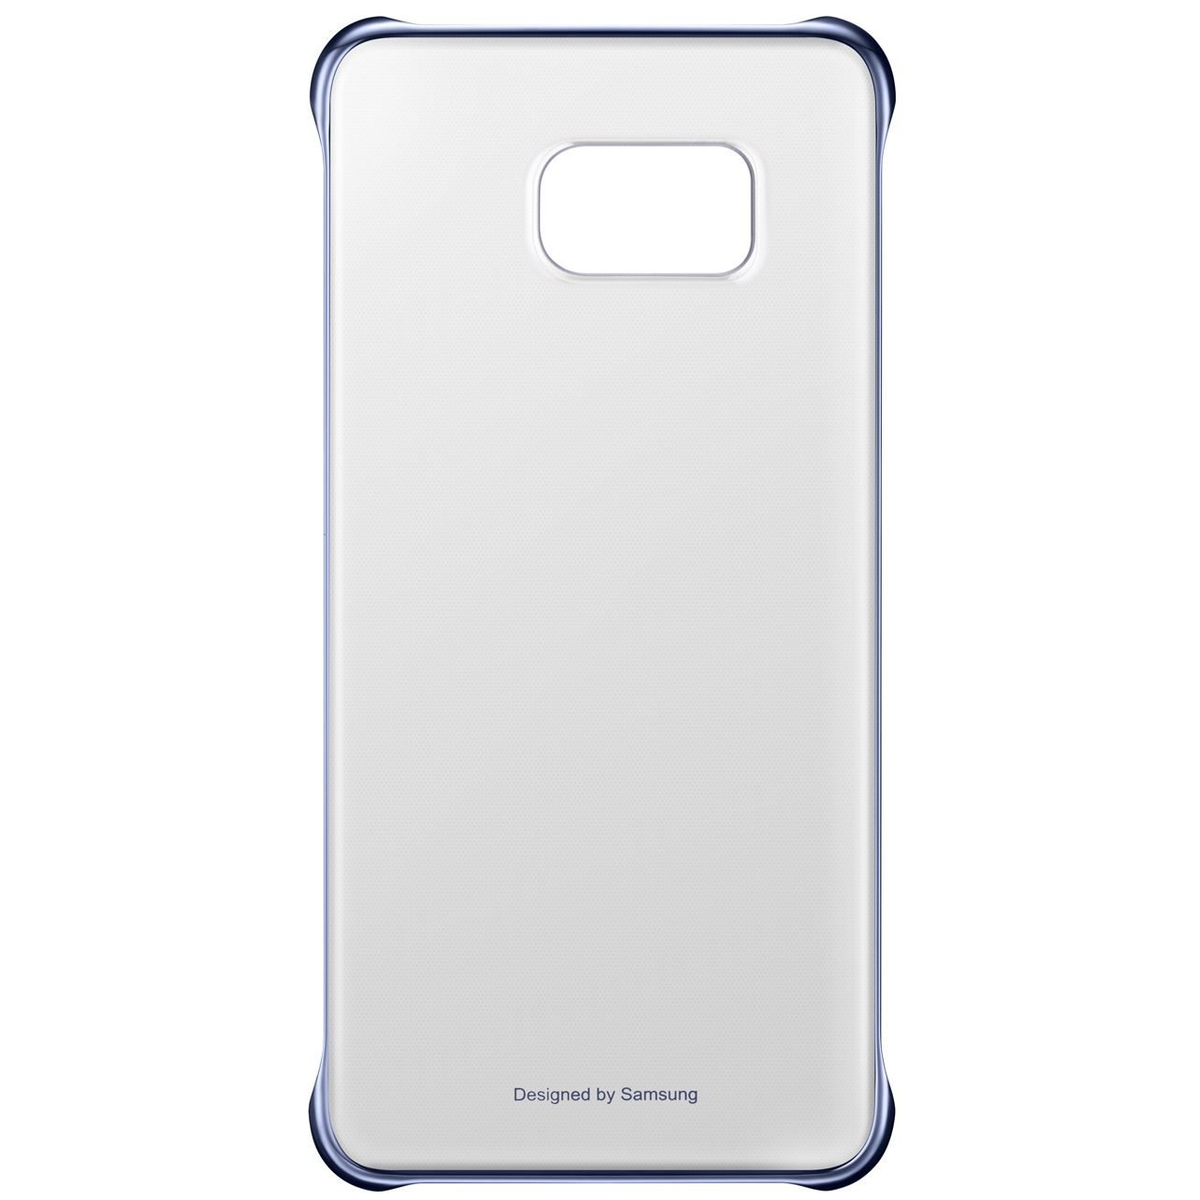 Samsung Clear Cover Galaxy S6 Edge+ blau-schwarz